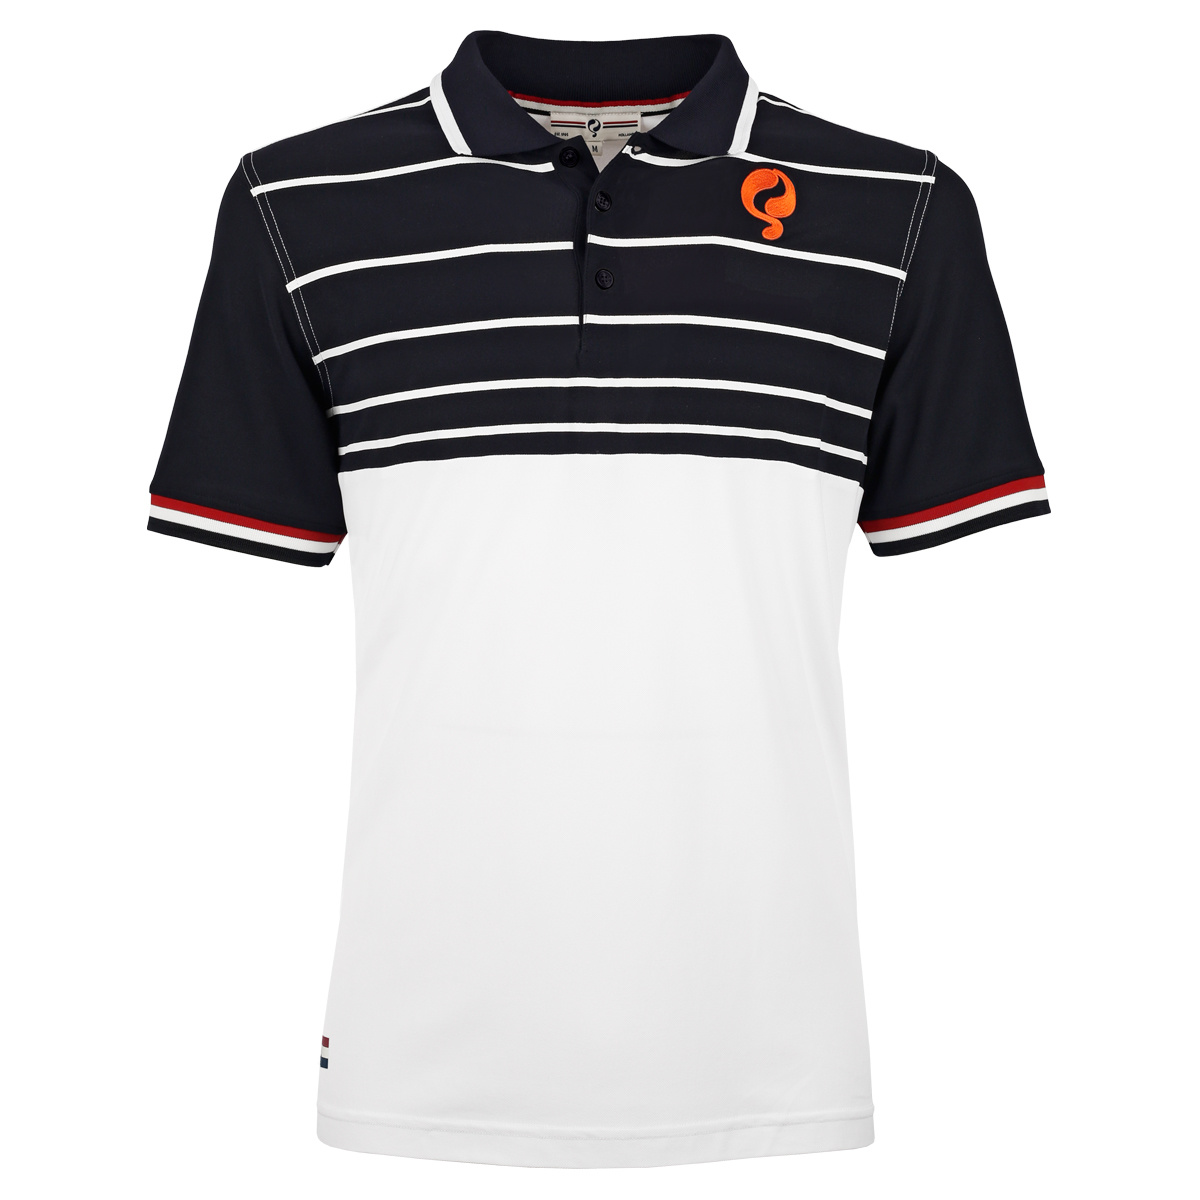 Q1905 Heren Polo JL Swing - Wit/Donkerblauw